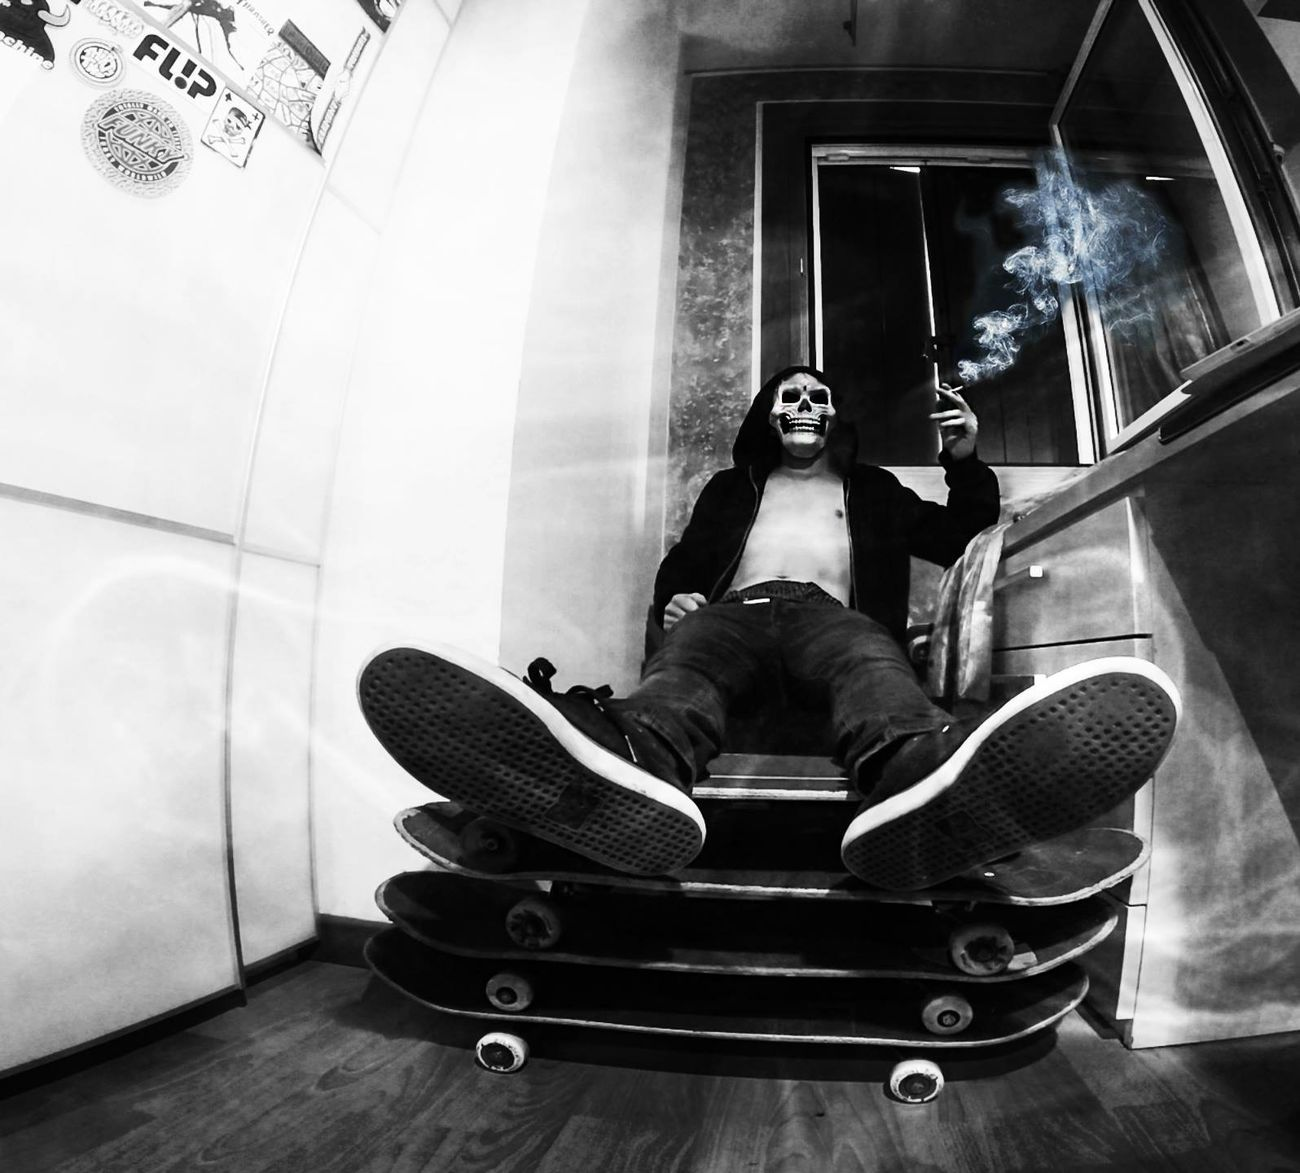 We all know it! But we do it anyway.. Skateboarding Smoking Deathart